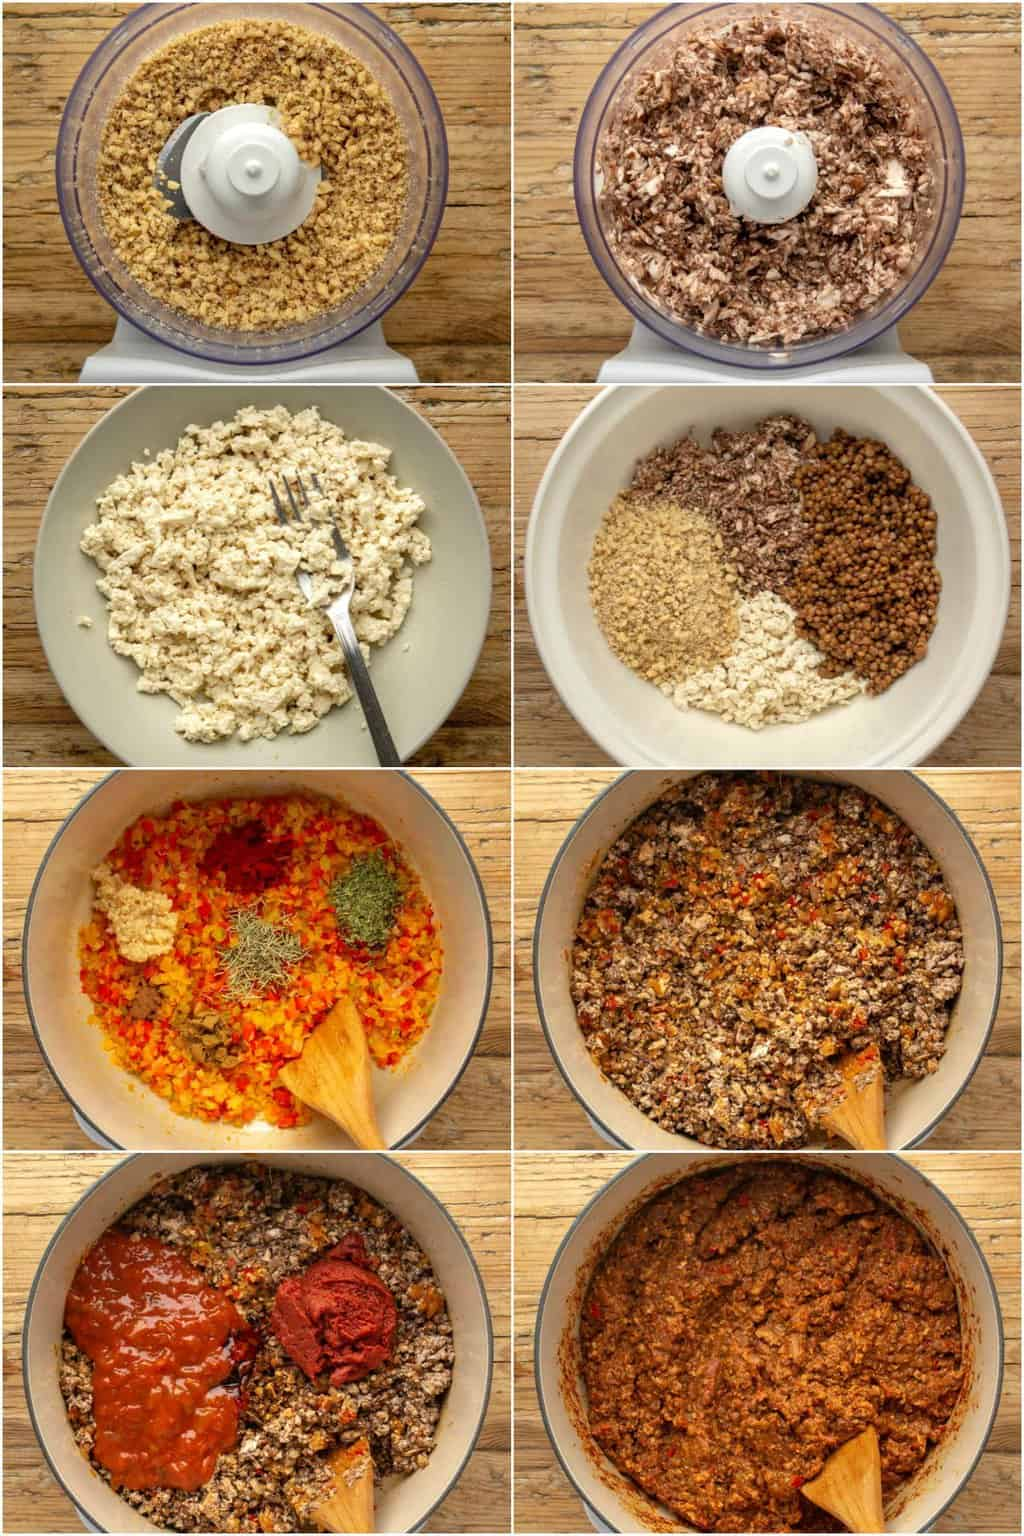 Step by step process photo collage of making vegan mince for moussaka.